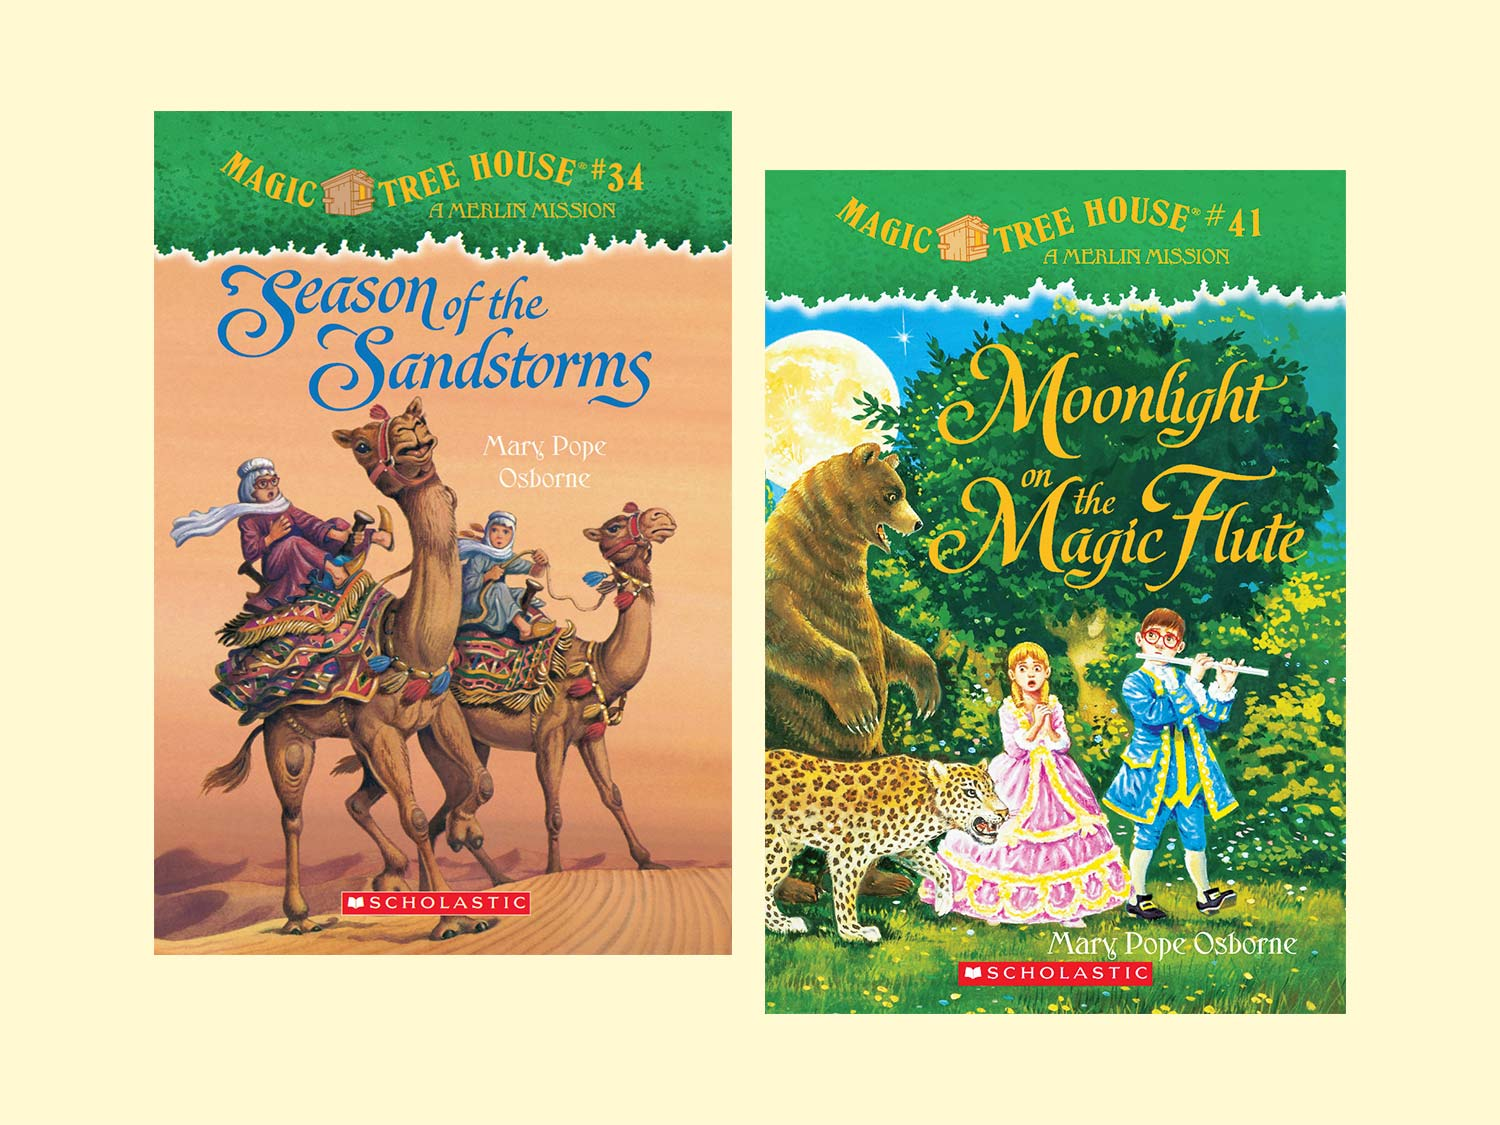 the magic tree house series